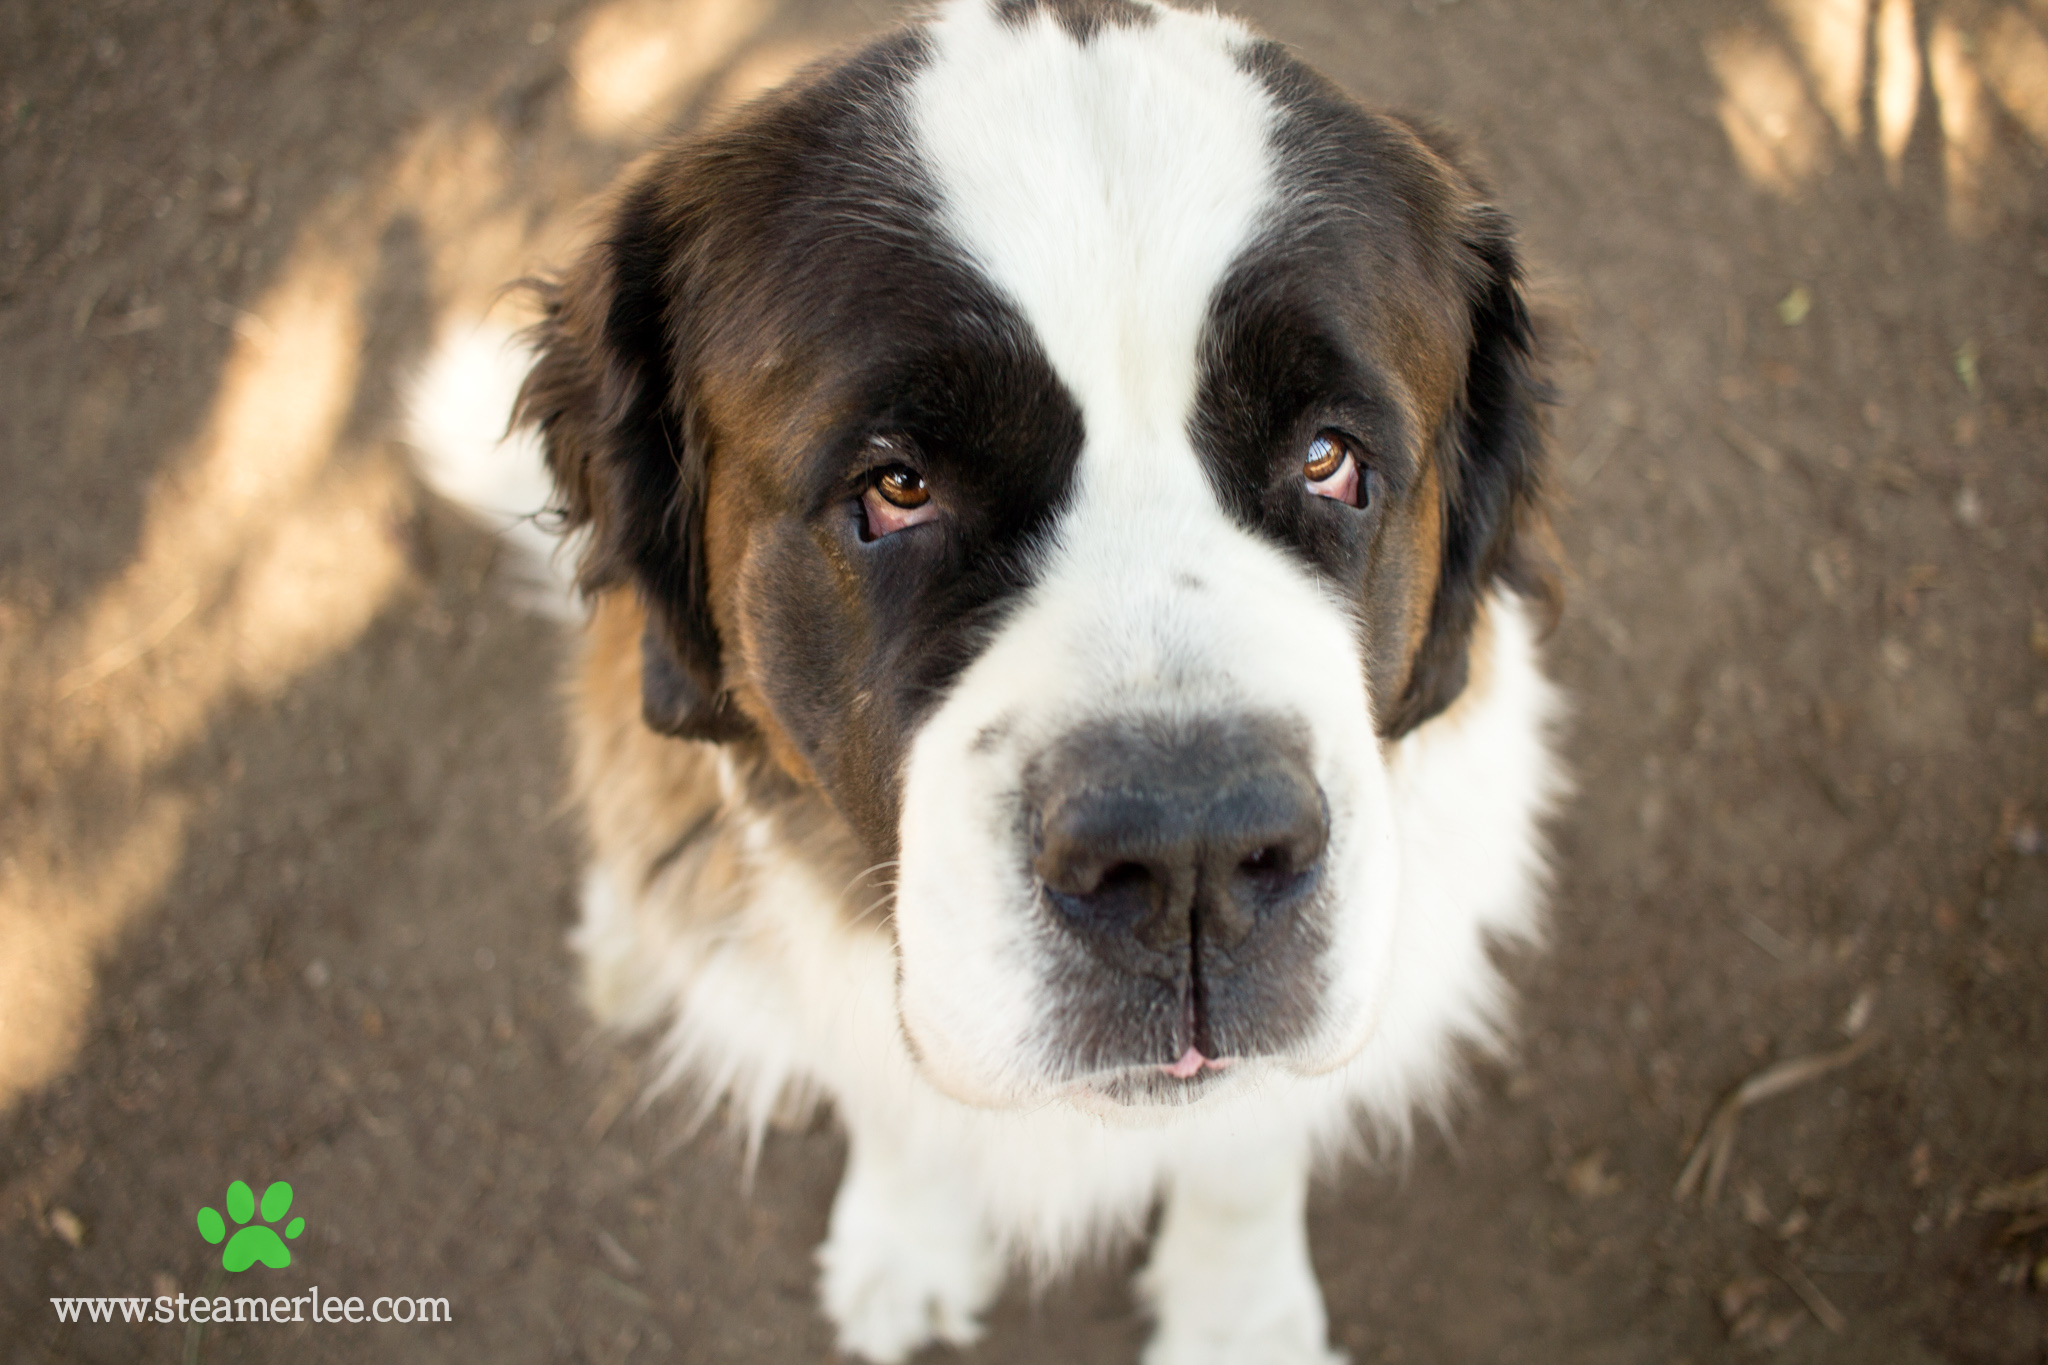 Honey was a St. Bernard who outlived her older brother, Tahoe; watched her sister Debra get adopted first, and went on to wait months and months until finally a family from Alaska rescued her from the hot Southern California weather to live where she's running around the snow like a puppy again.